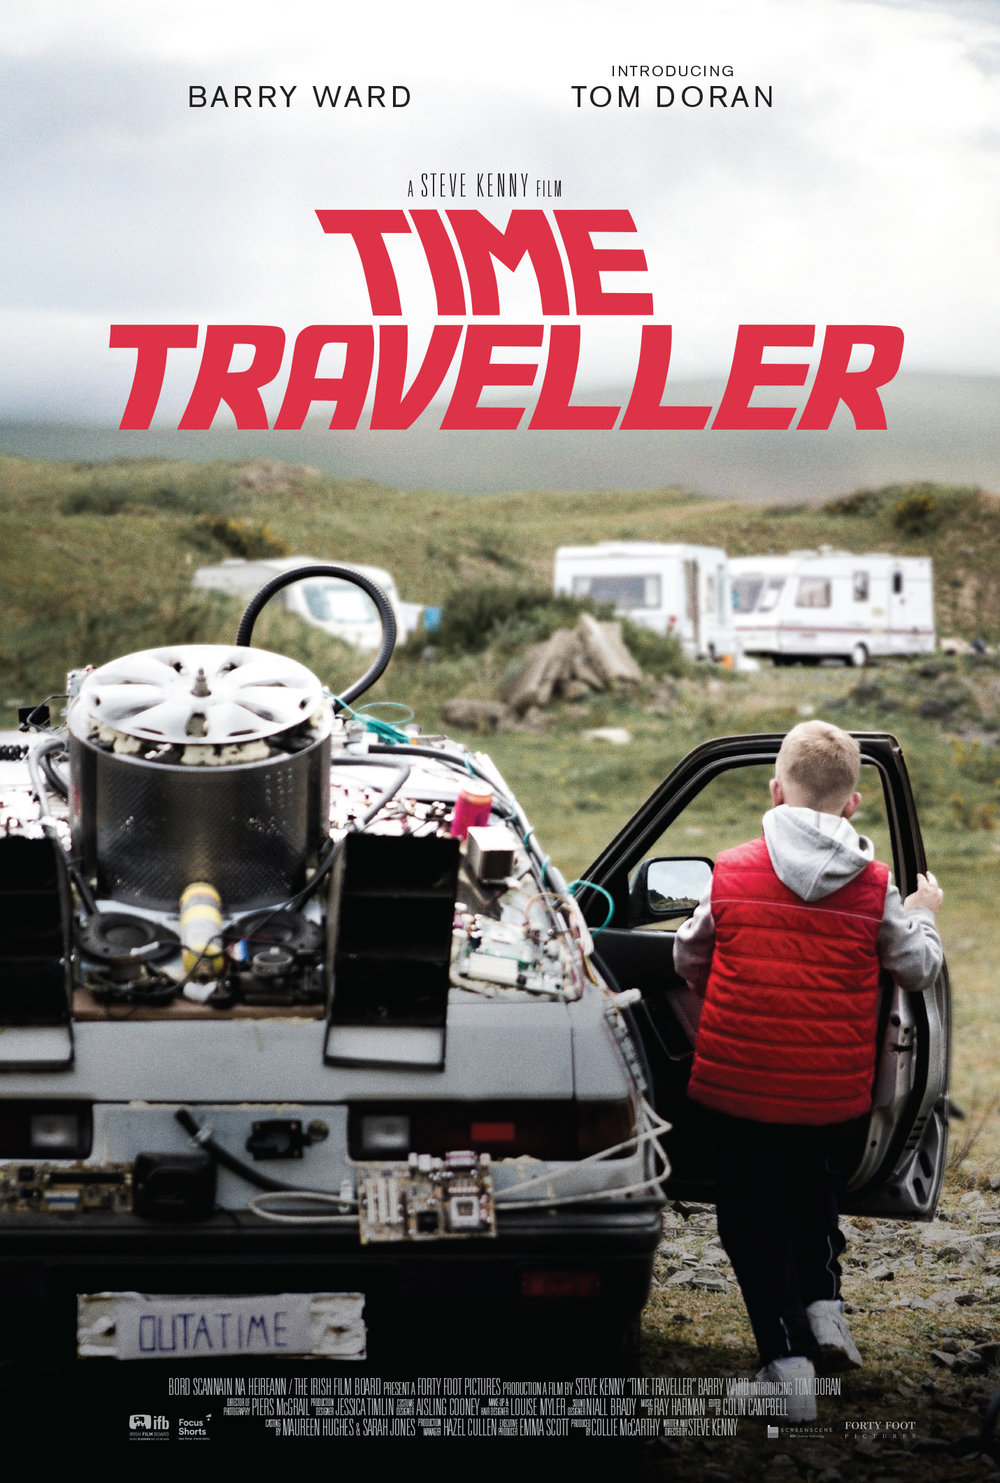 TIME TRAVELLER - Drama, Adventure. 11mins.A 'Back To The Future'-obsessed traveller boy strives to finish building his own DeLorean replica before his family are evicted from their halting site.Writer/Director: Steve KennyStarring: Tom Doran, Barry WardScreen Ireland's inaugural 'Focus Short' 2017. IFTA nominated 2018. Academy Award Qualified 2019.40+ Festival Screenings including Tribeca, Rhode Island, Clermont Ferrand, Galway, Oberhausen, and Edinburgh. Award winner at Foyle, Dublin, Nashville, Edmonton, and Leeds.Available on Amazon Prime (US & UK).